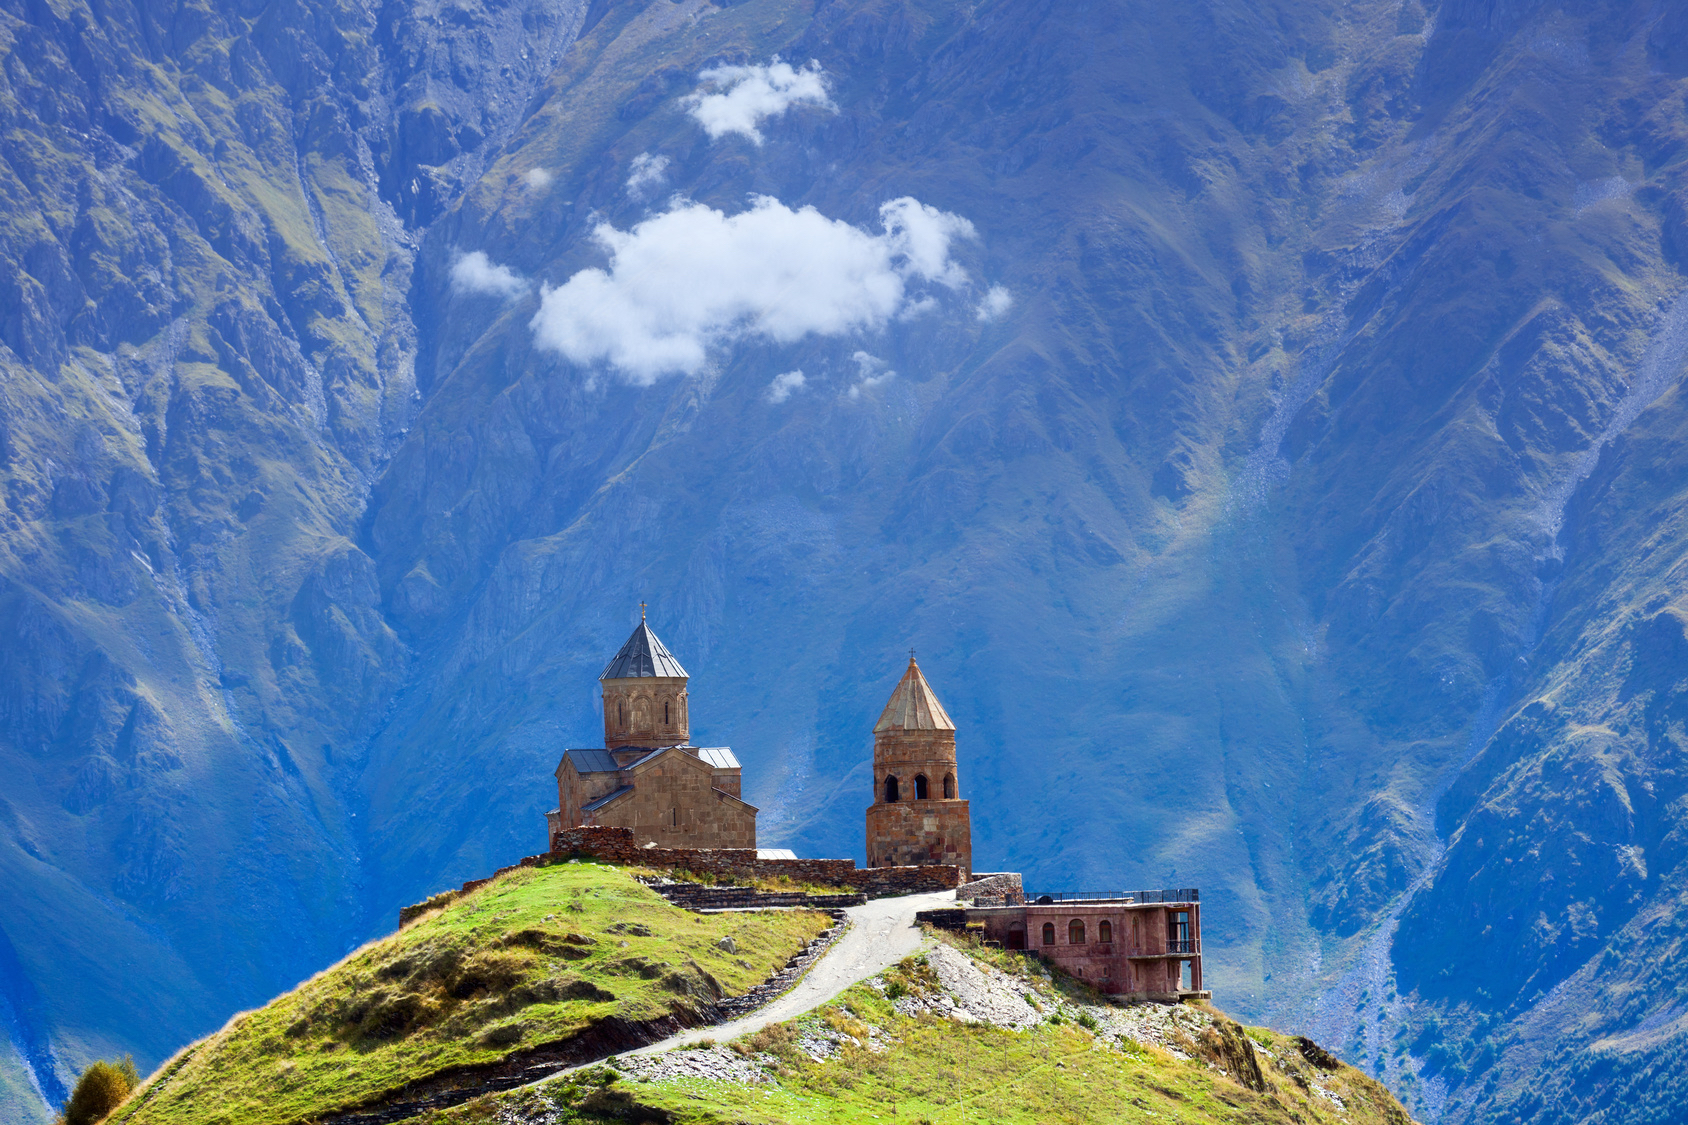 Gergeti Christian church near Kazbegi, Stepancminda village in Georgia, Caucasus